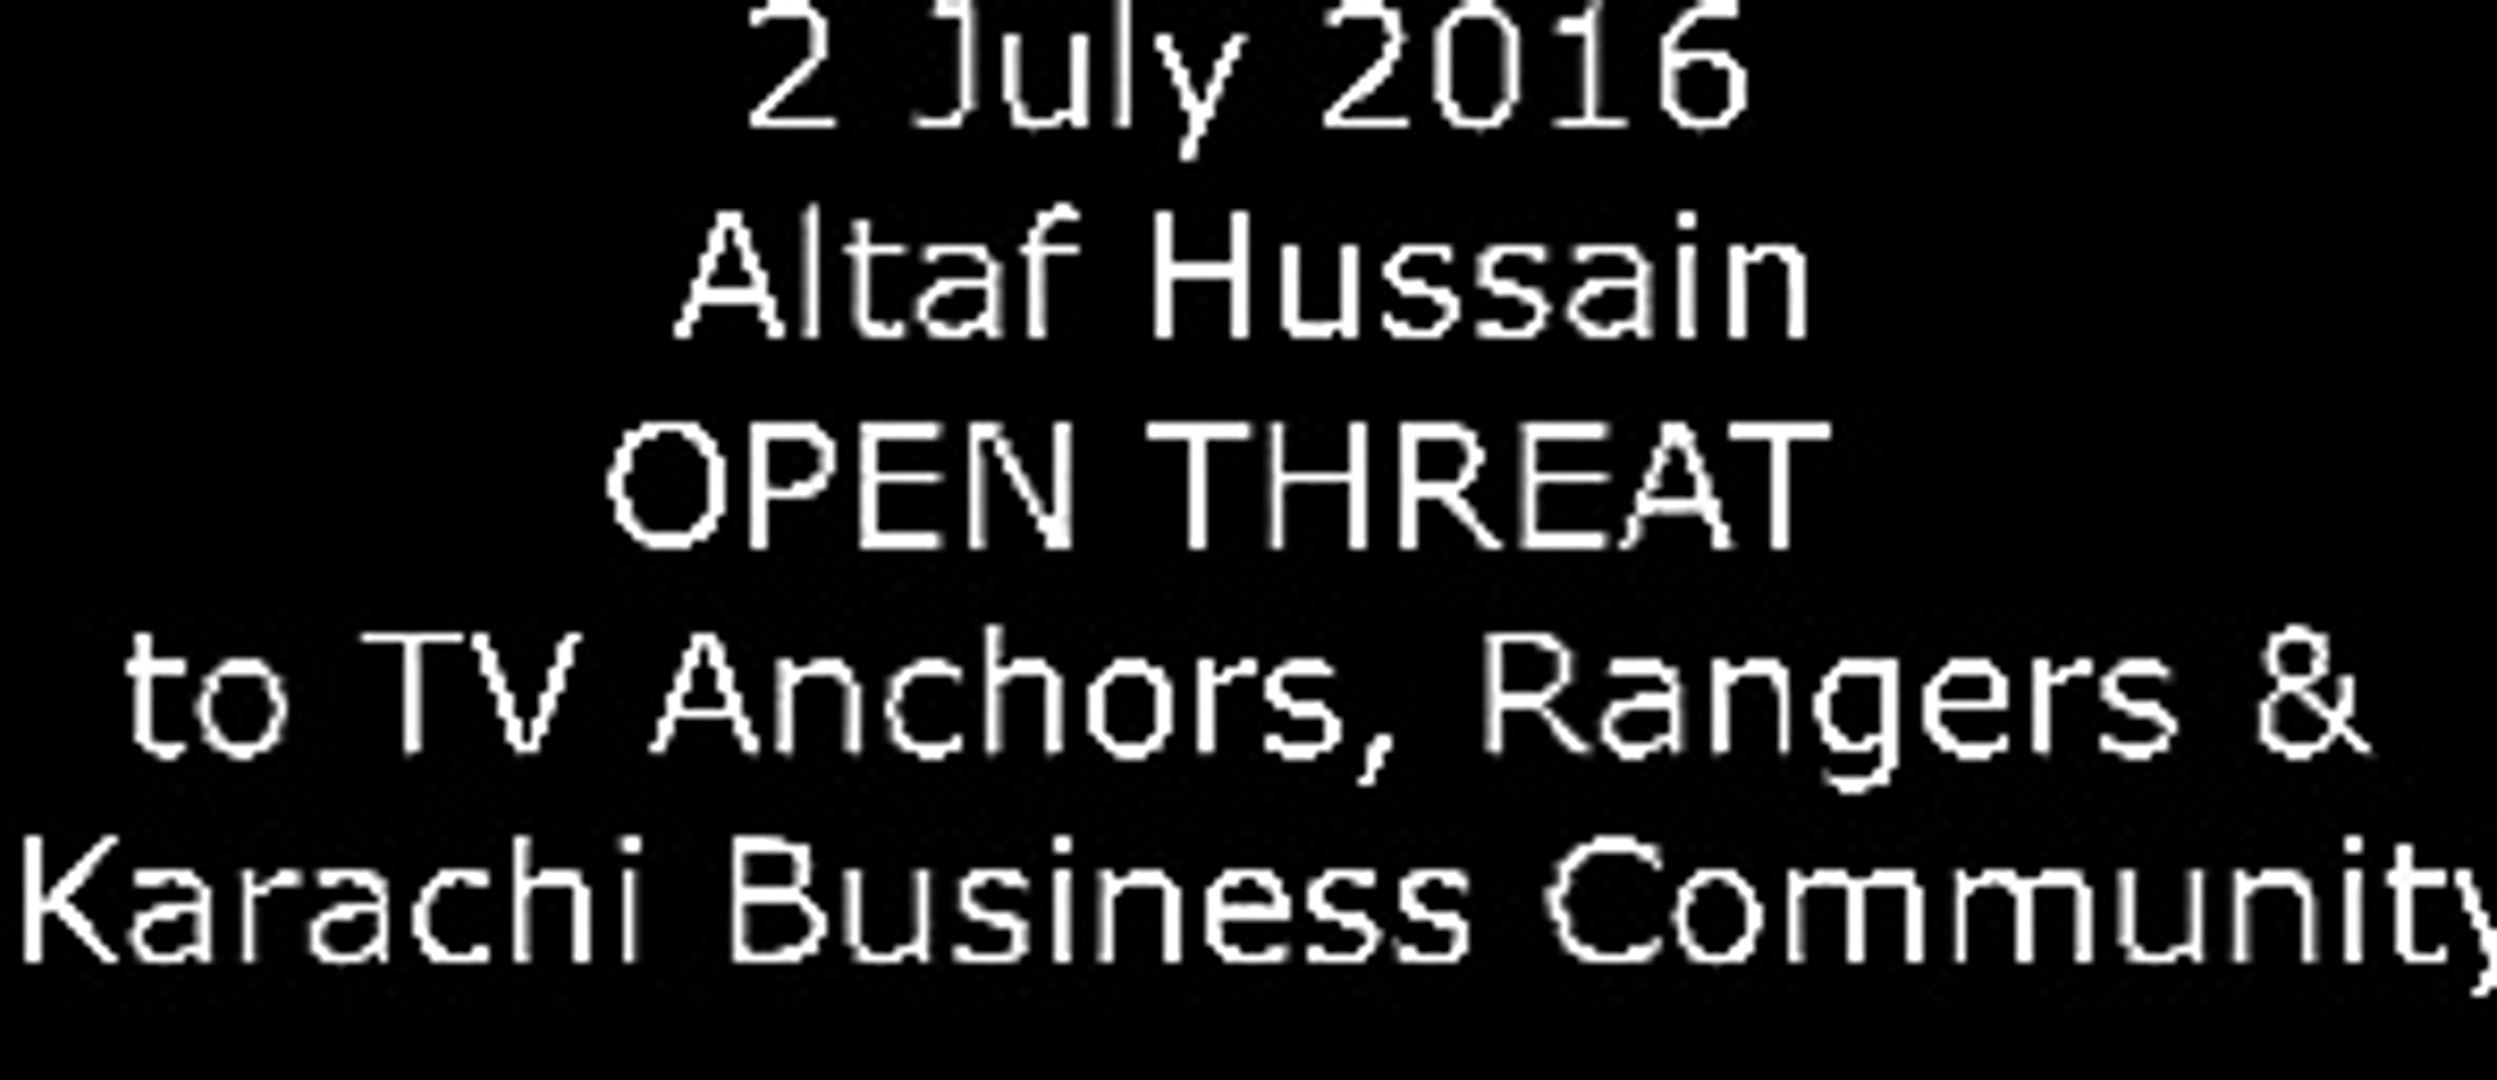 Altaf Hussain Open Threat to Karachi Business Community And TV Anchors